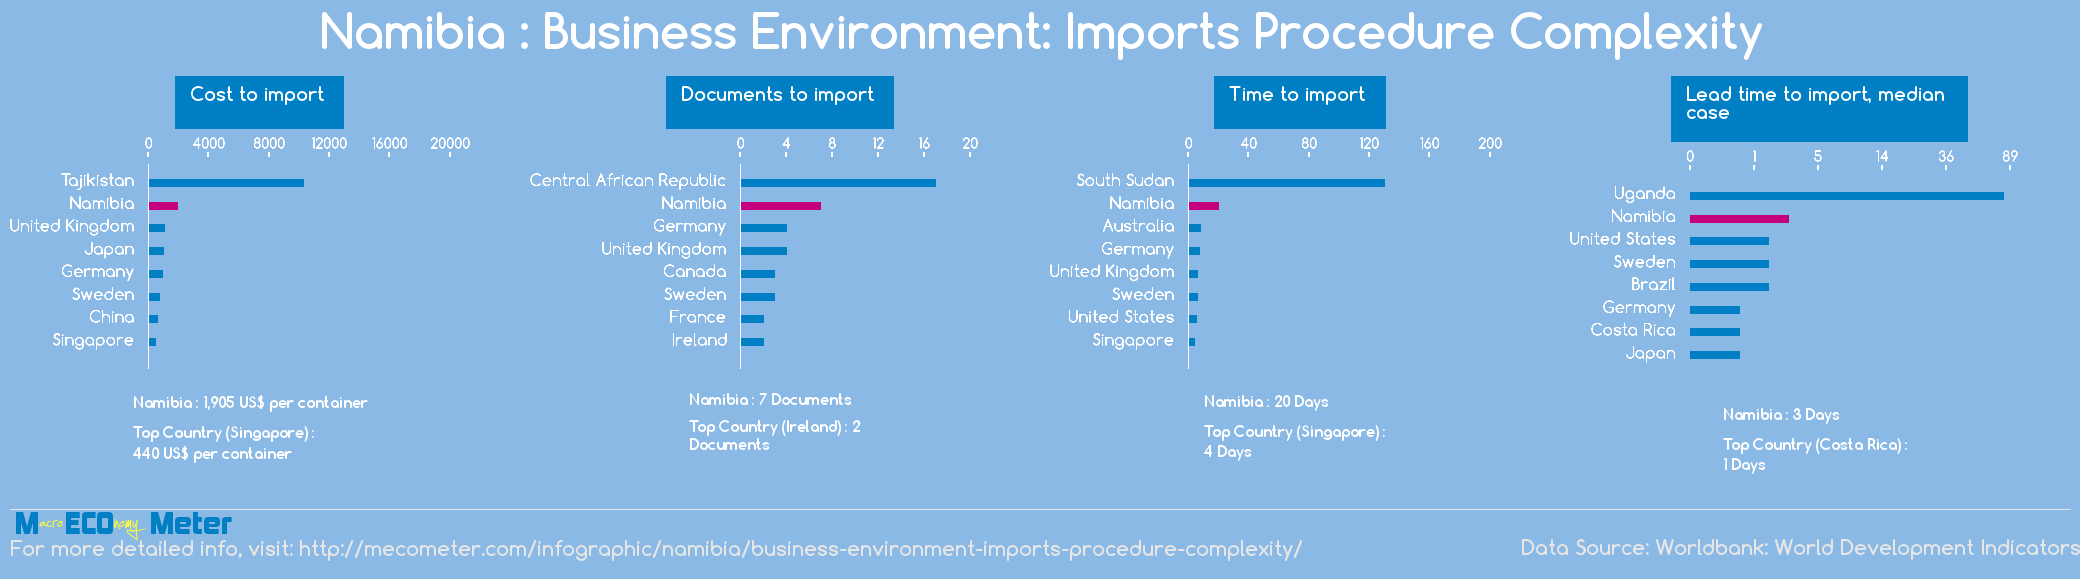 Namibia : Business Environment: Imports Procedure Complexity